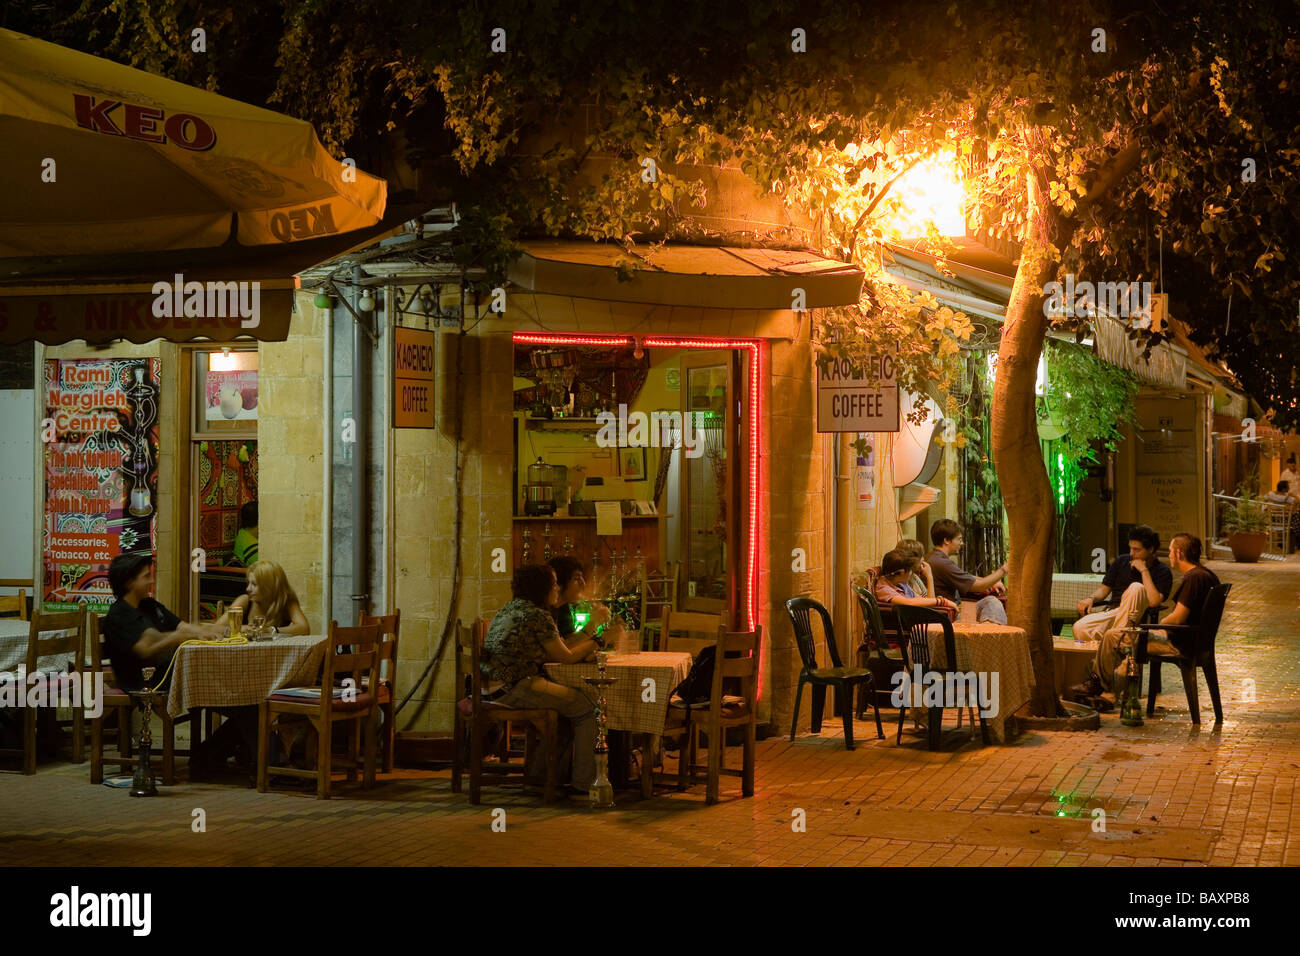 People Sitting Outside A Cafe Coffee Shop At Night Laiki